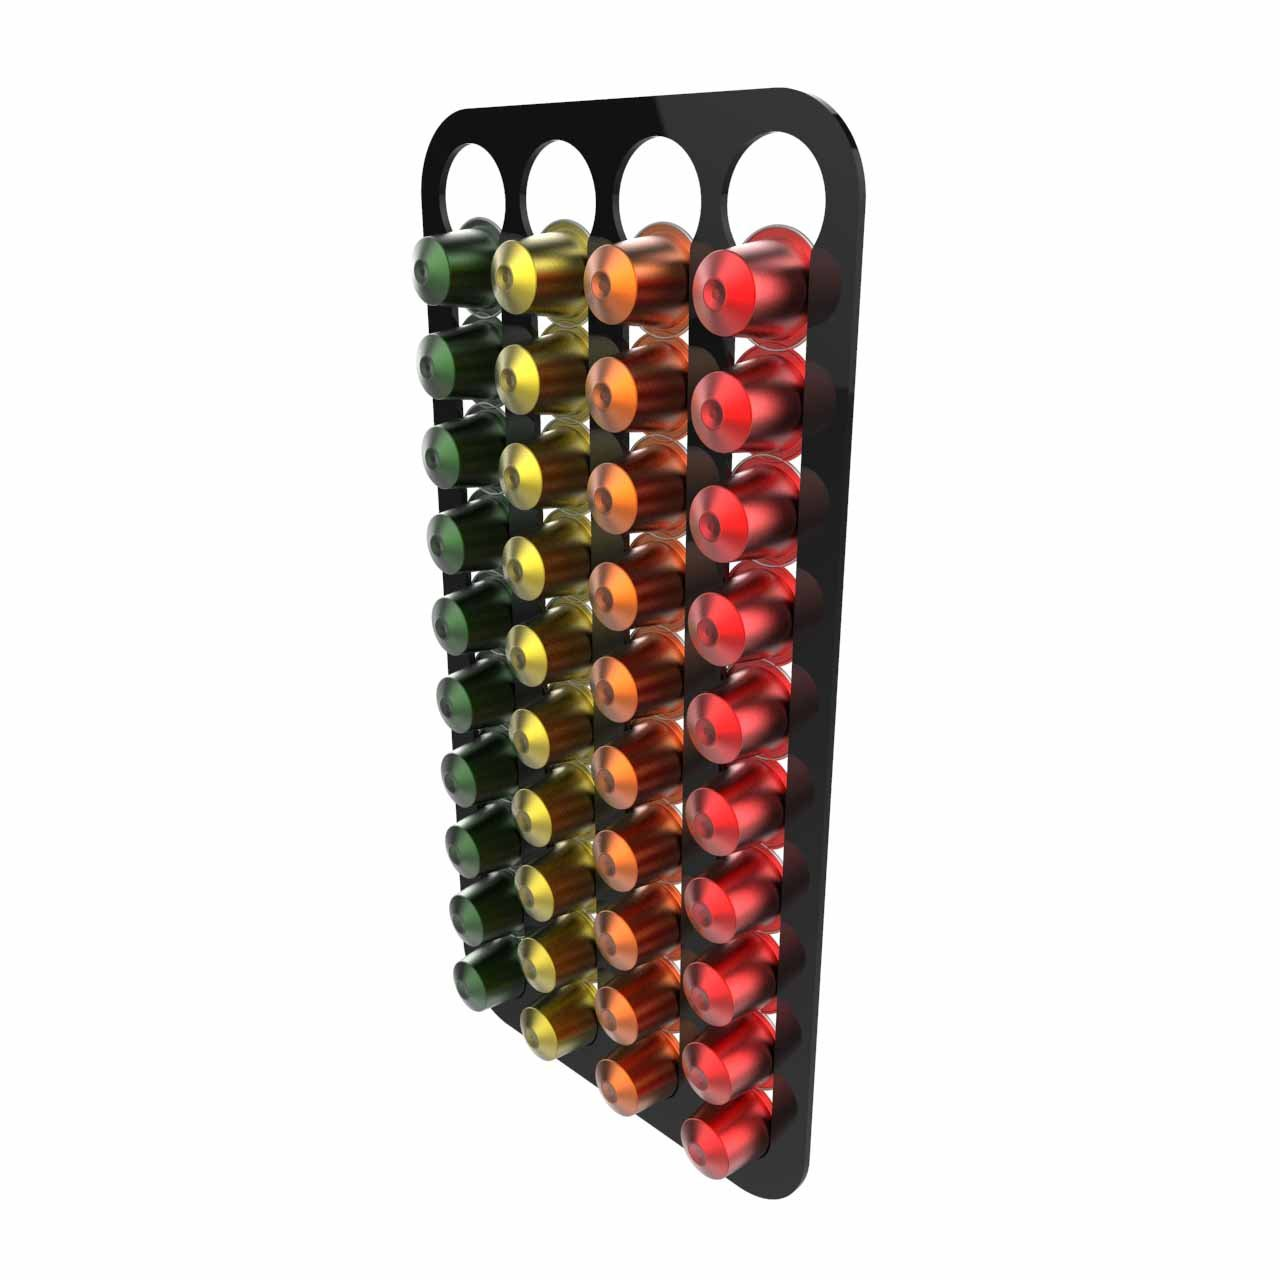 Nespresso coffee capsule pod holder wall mounted holds 40 capsules Free Trolley Token Material Sample Included per Shipment Black